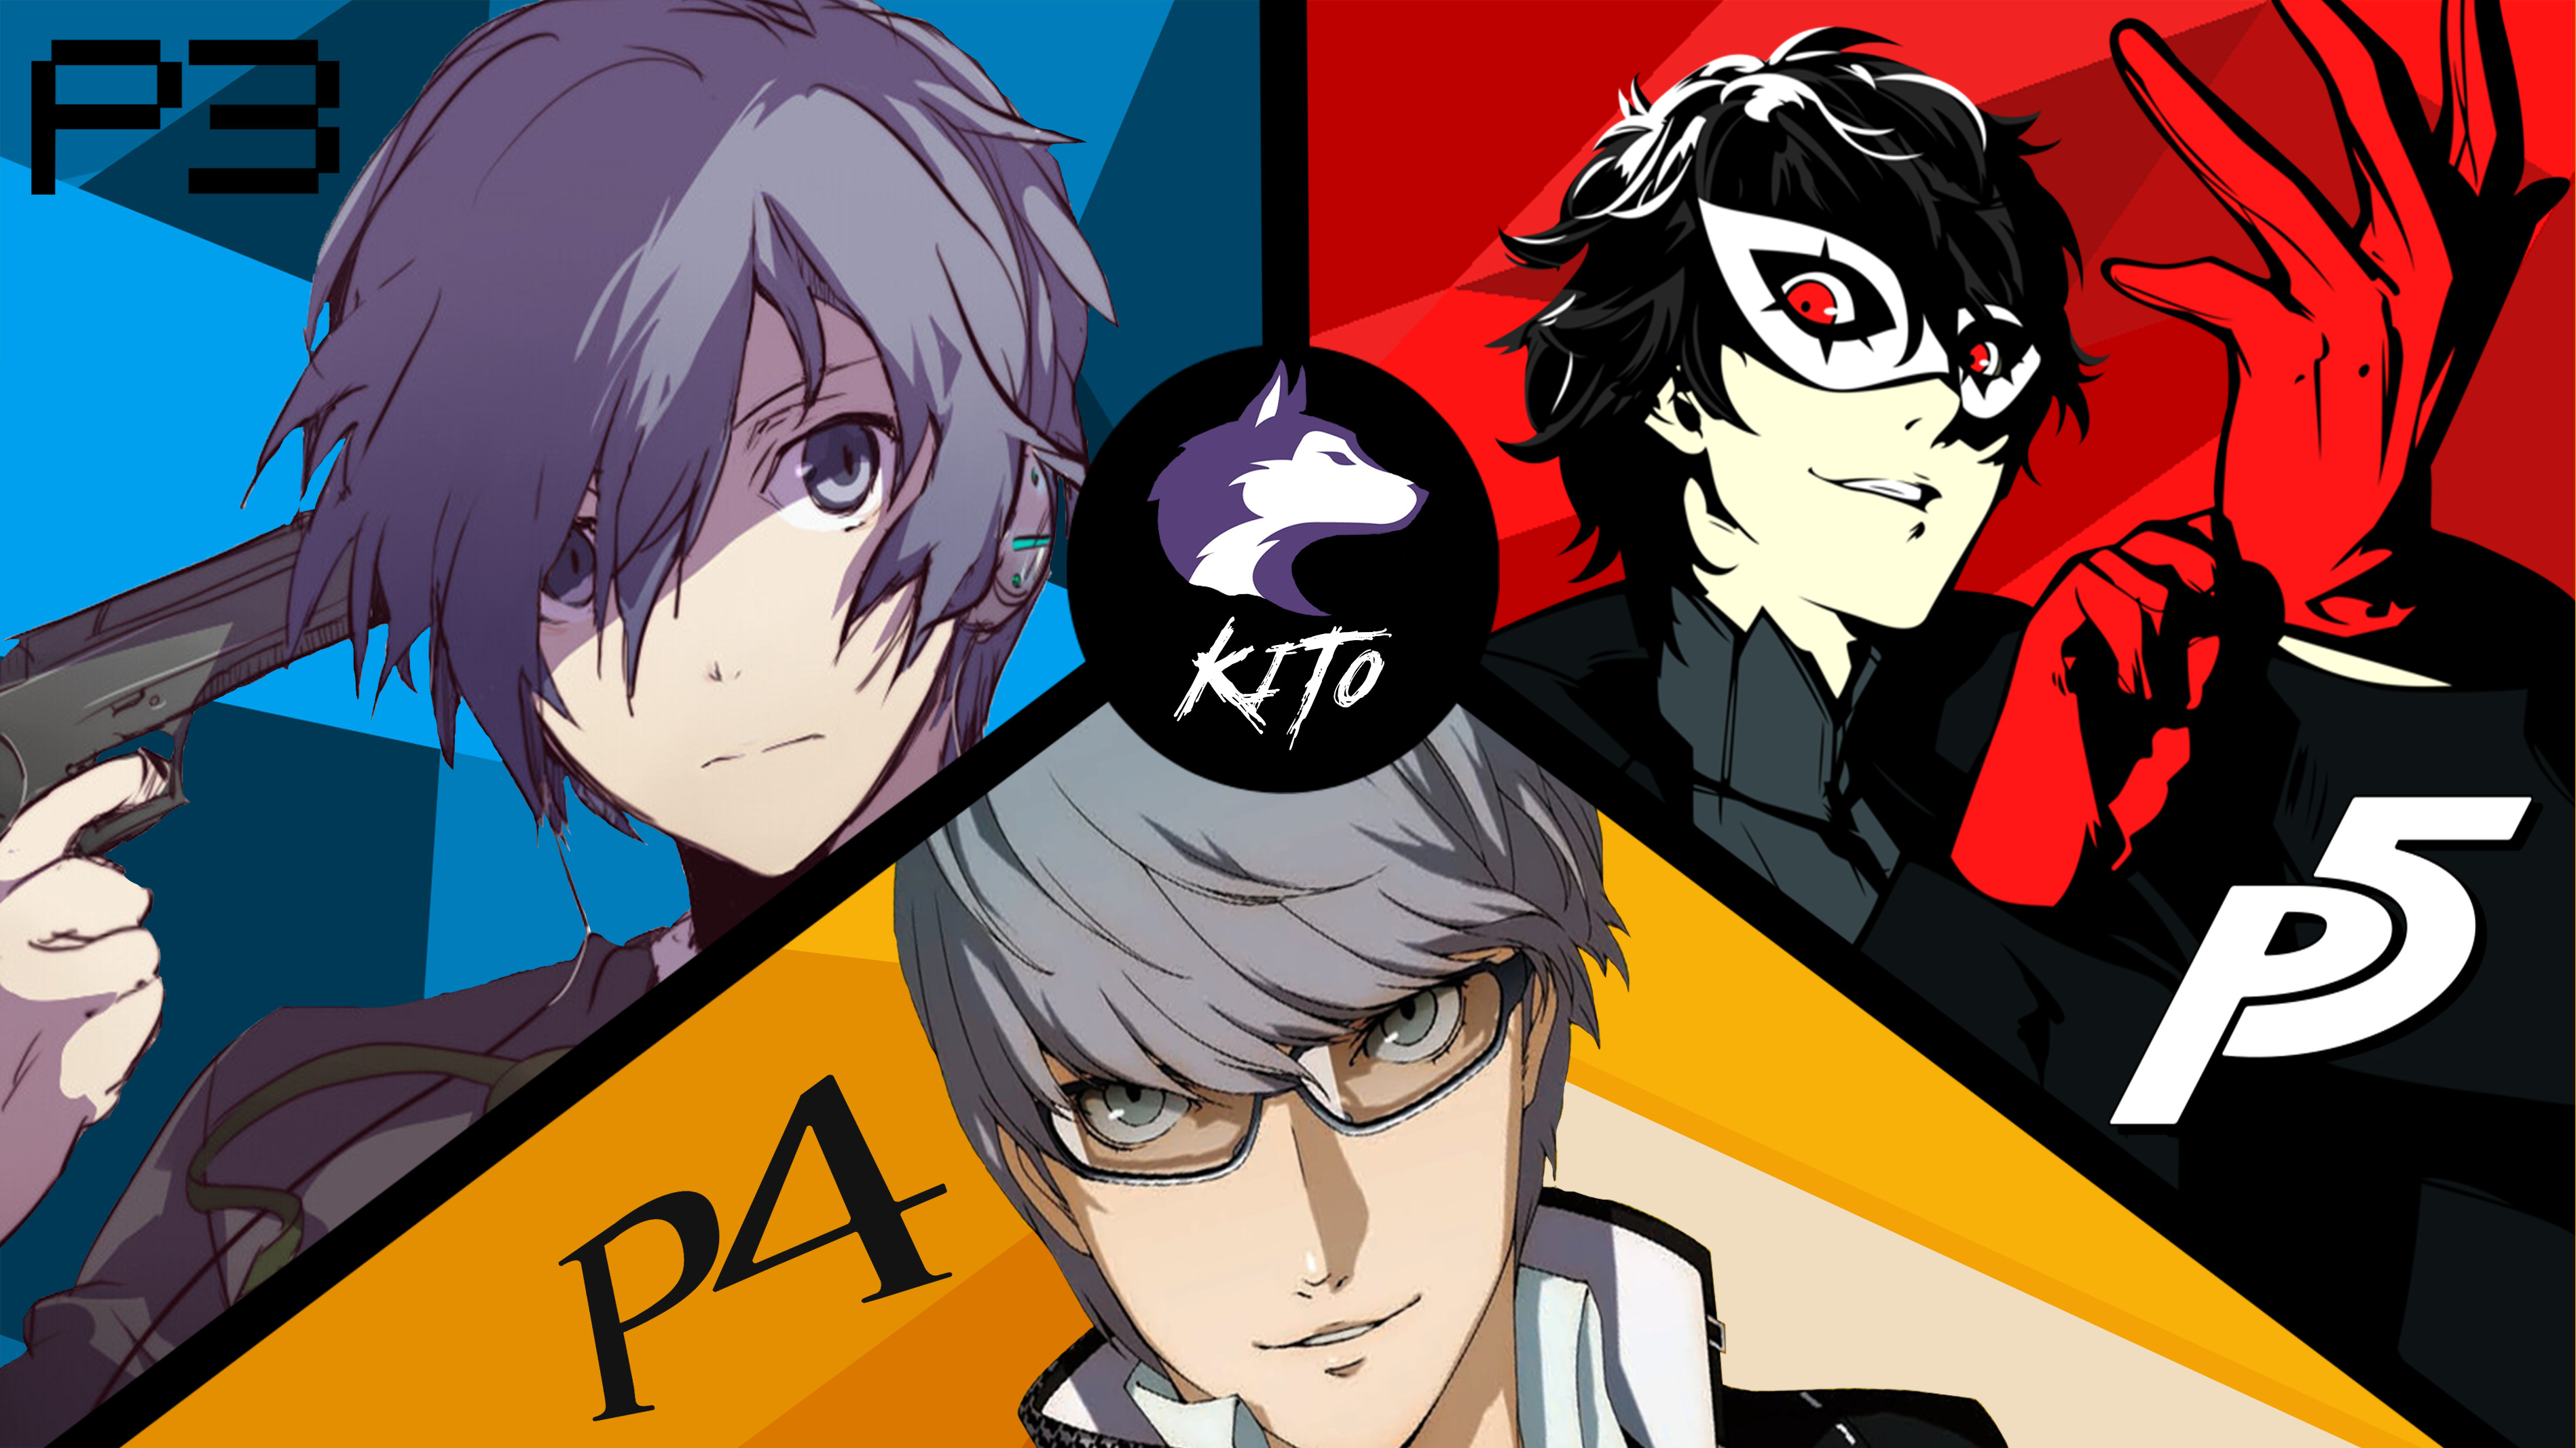 Res: 3794x2133, Persona 3, 4 and 5 Wallpaper